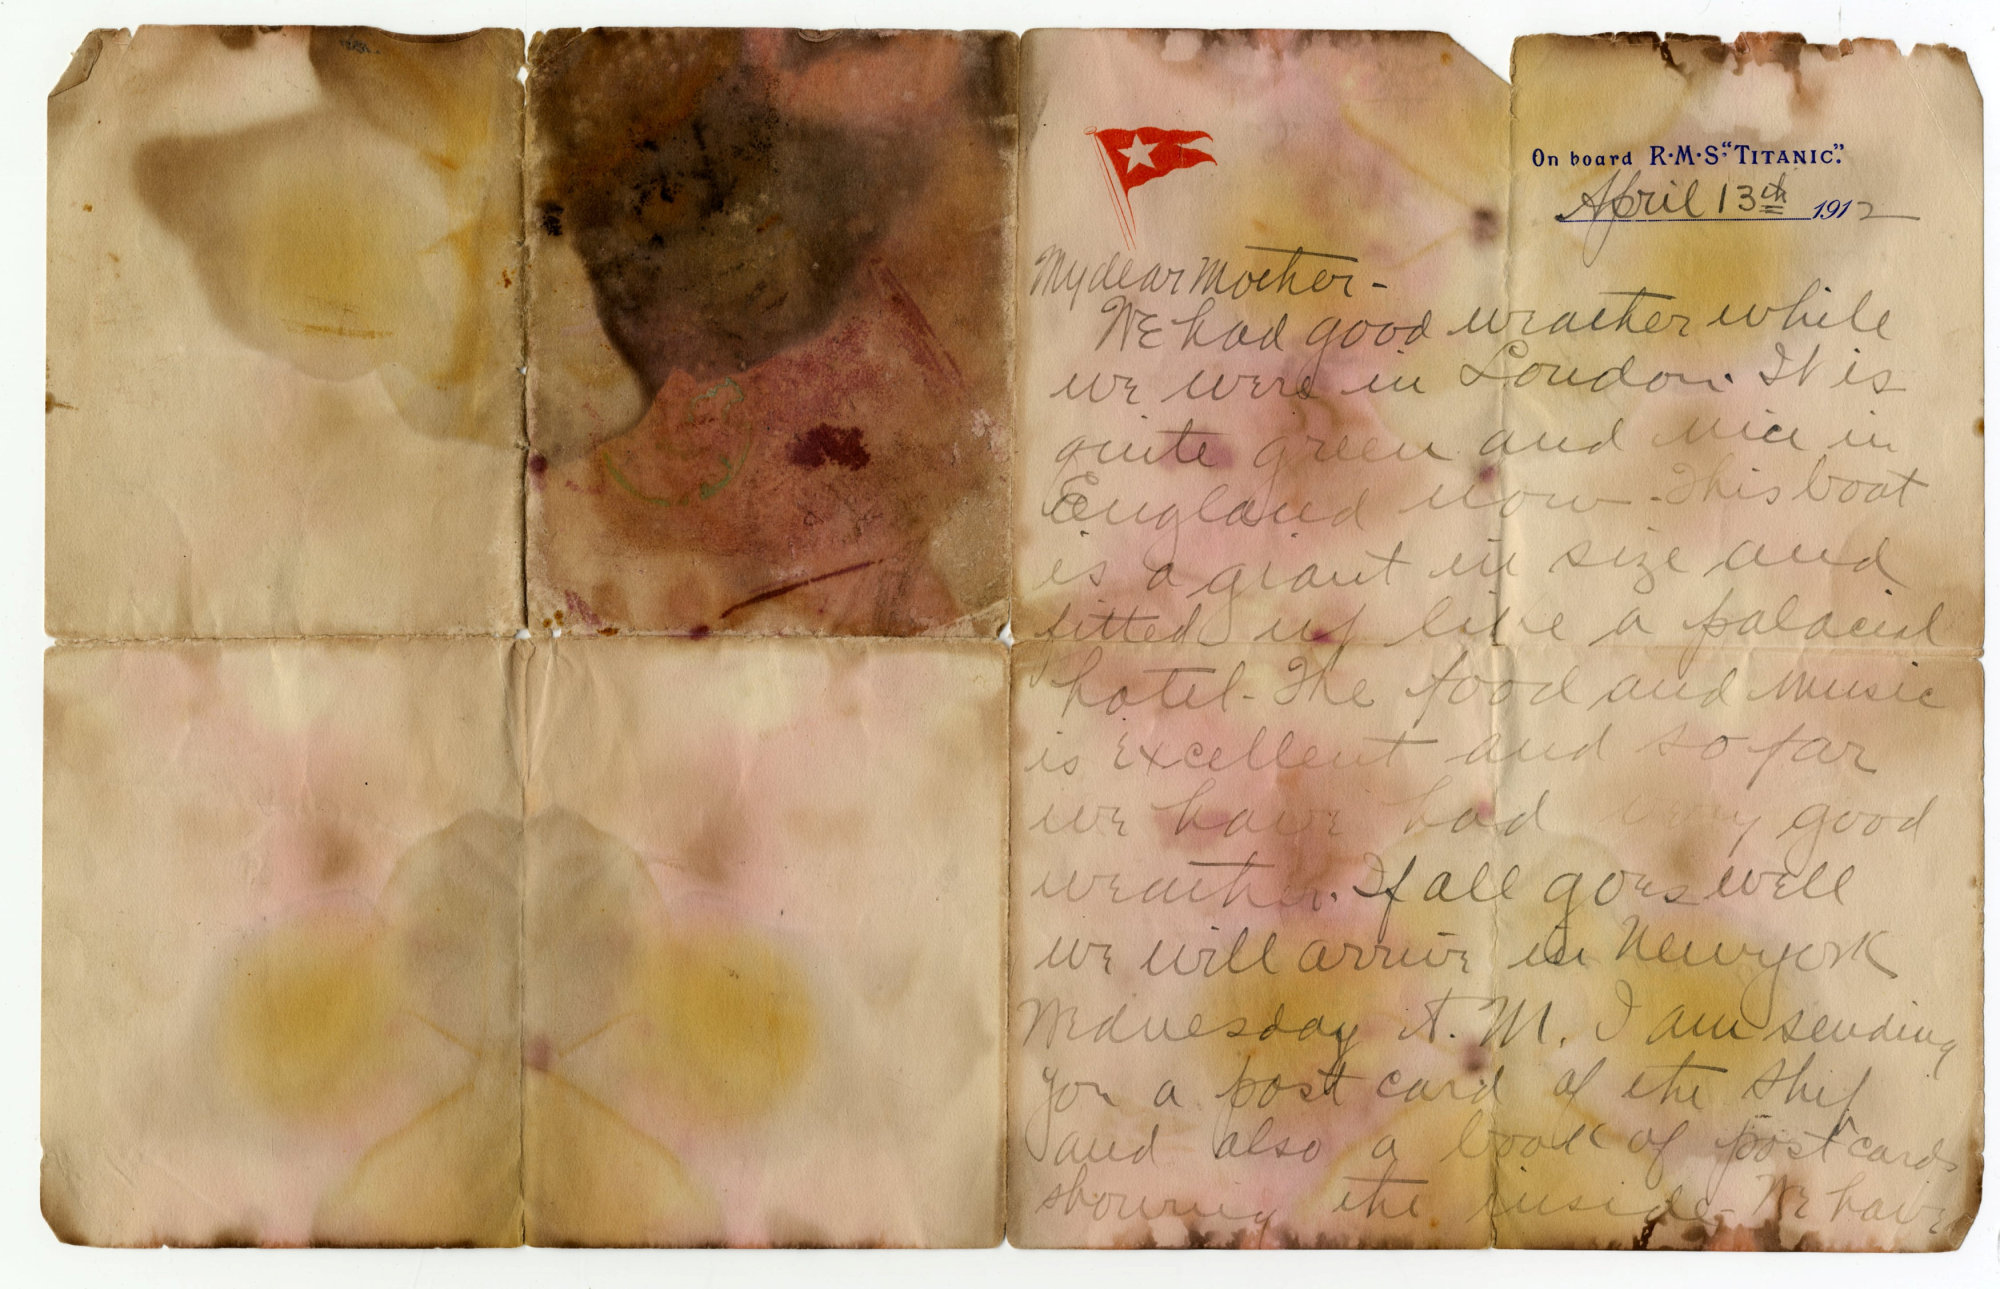 This letter was written on April 13, 1912, and recovered from the body of Alexander Oskar Holverson, a Titanic victim. | HENRY ALDRIDGE